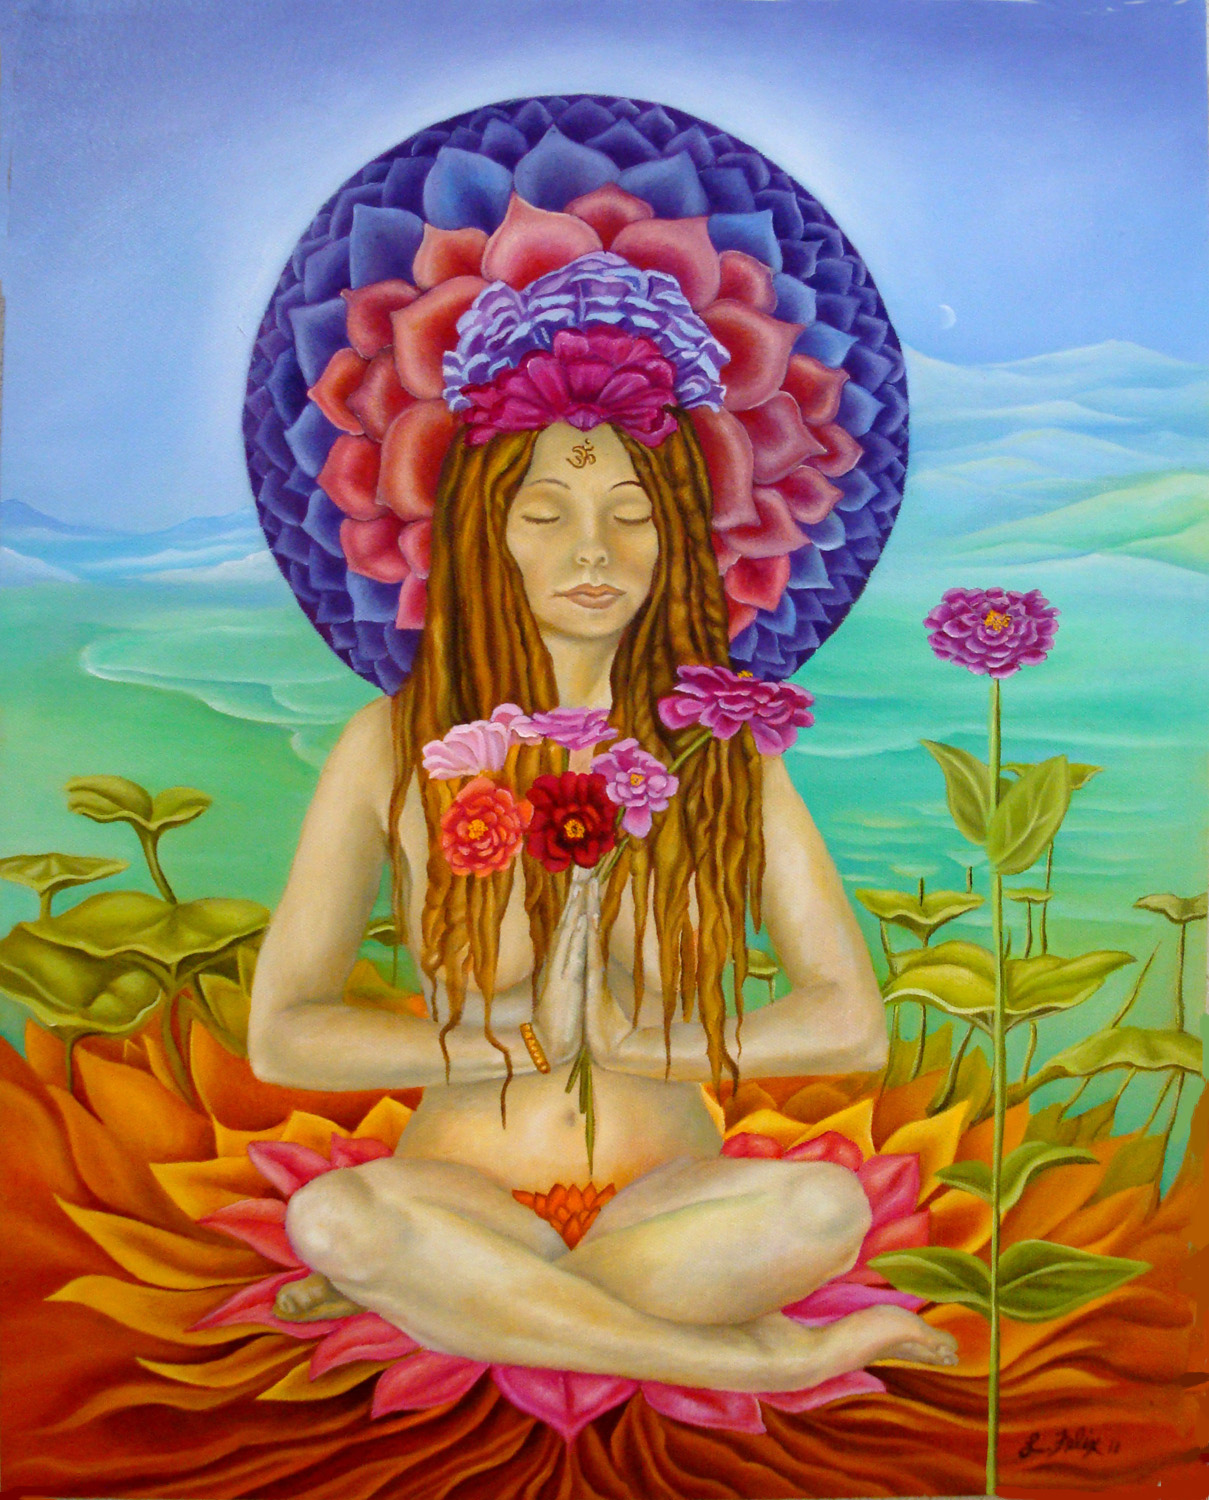 Lady Zinnia in the 7th Chakra, 16